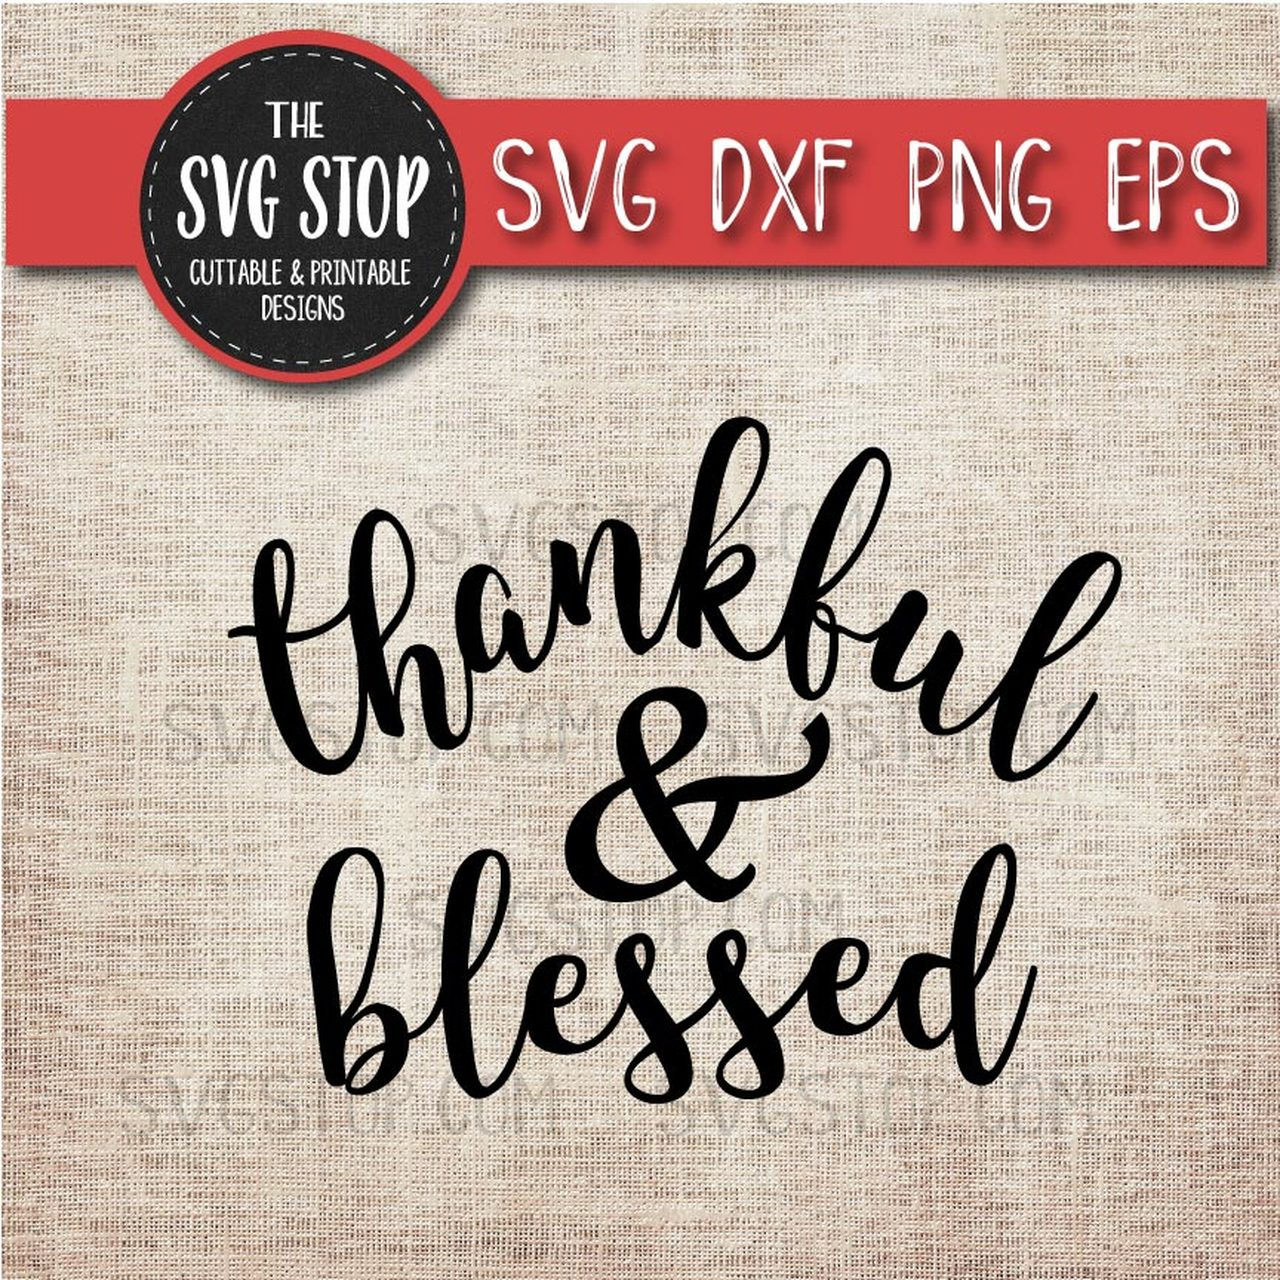 Thankful & Blessed.